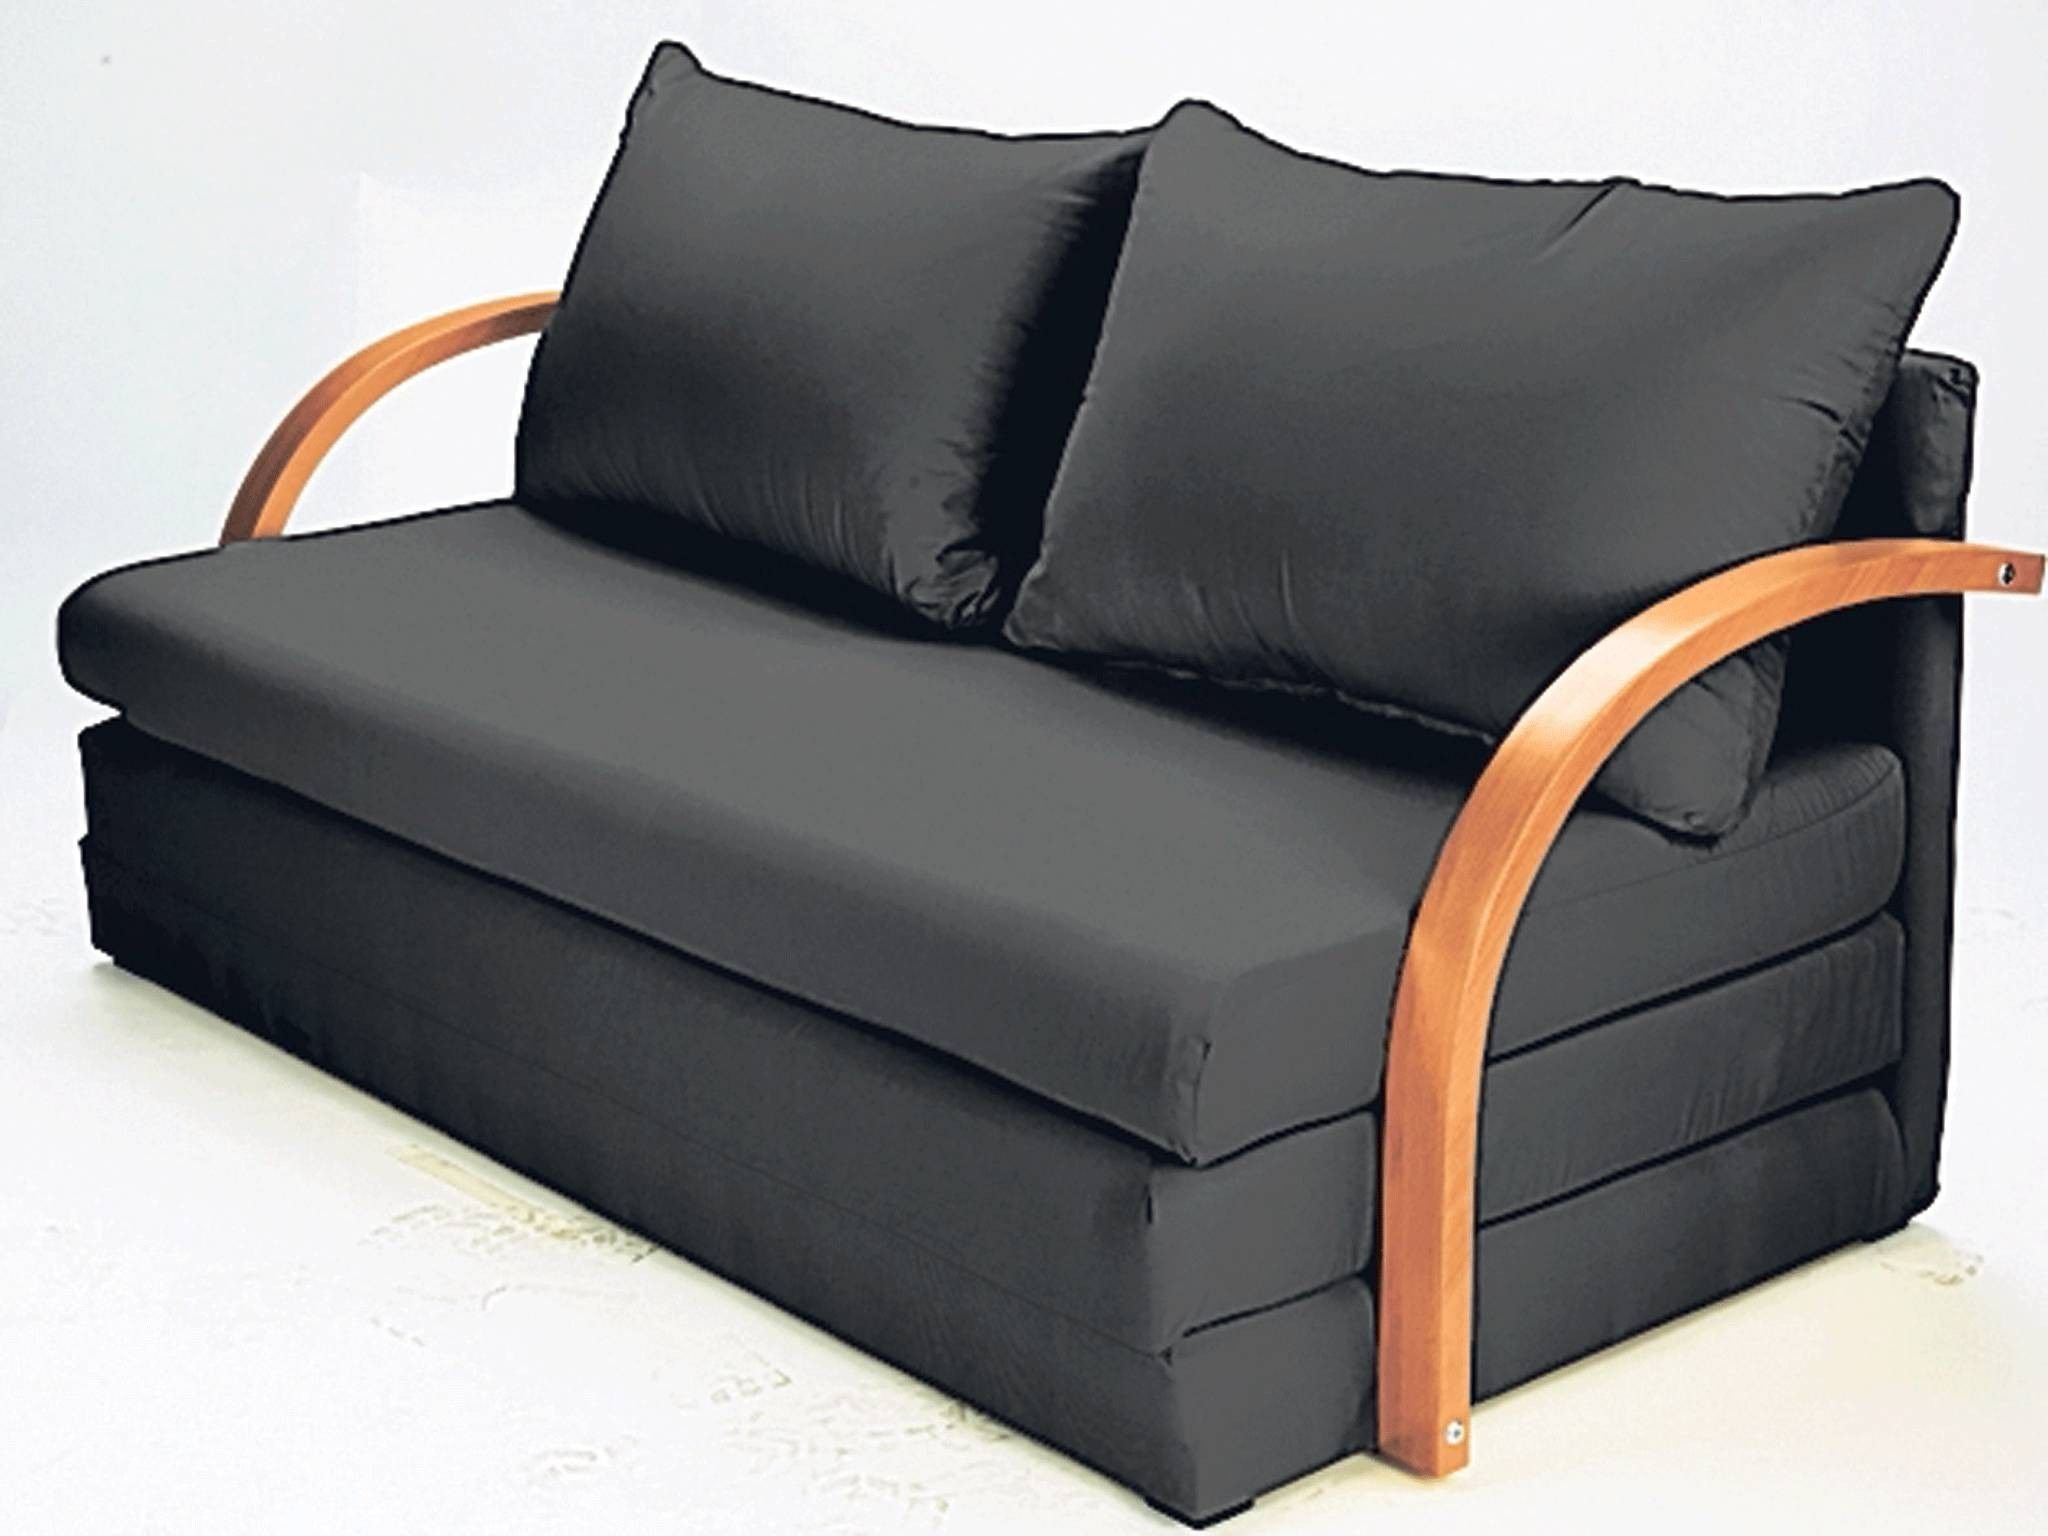 Elegant Chairs that Turn Into Beds bean bag chairs that